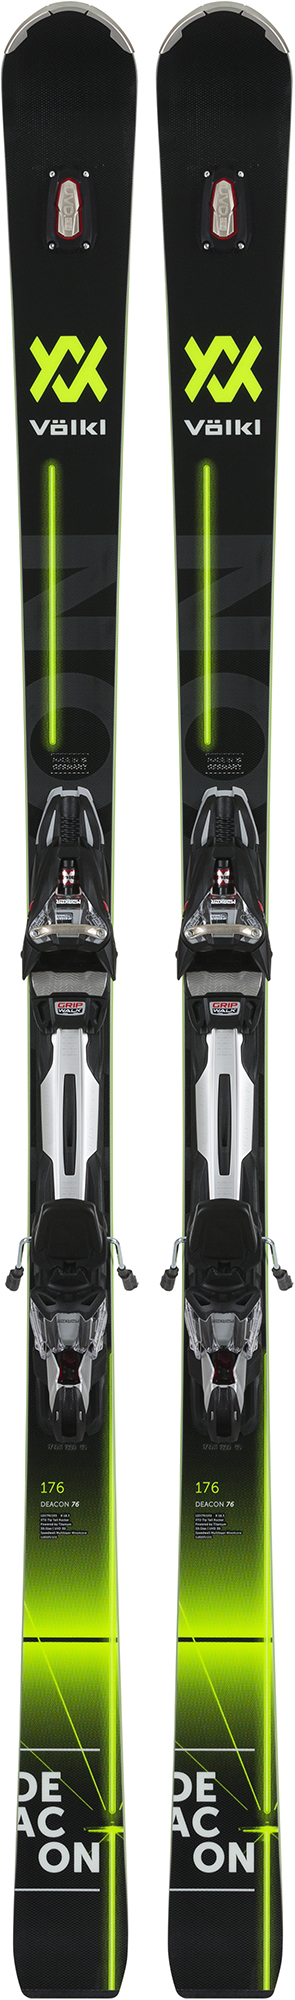 Volkl Volkl Deacon 76 black + rMotion2 12 GW Deacon (18/19), размер 171